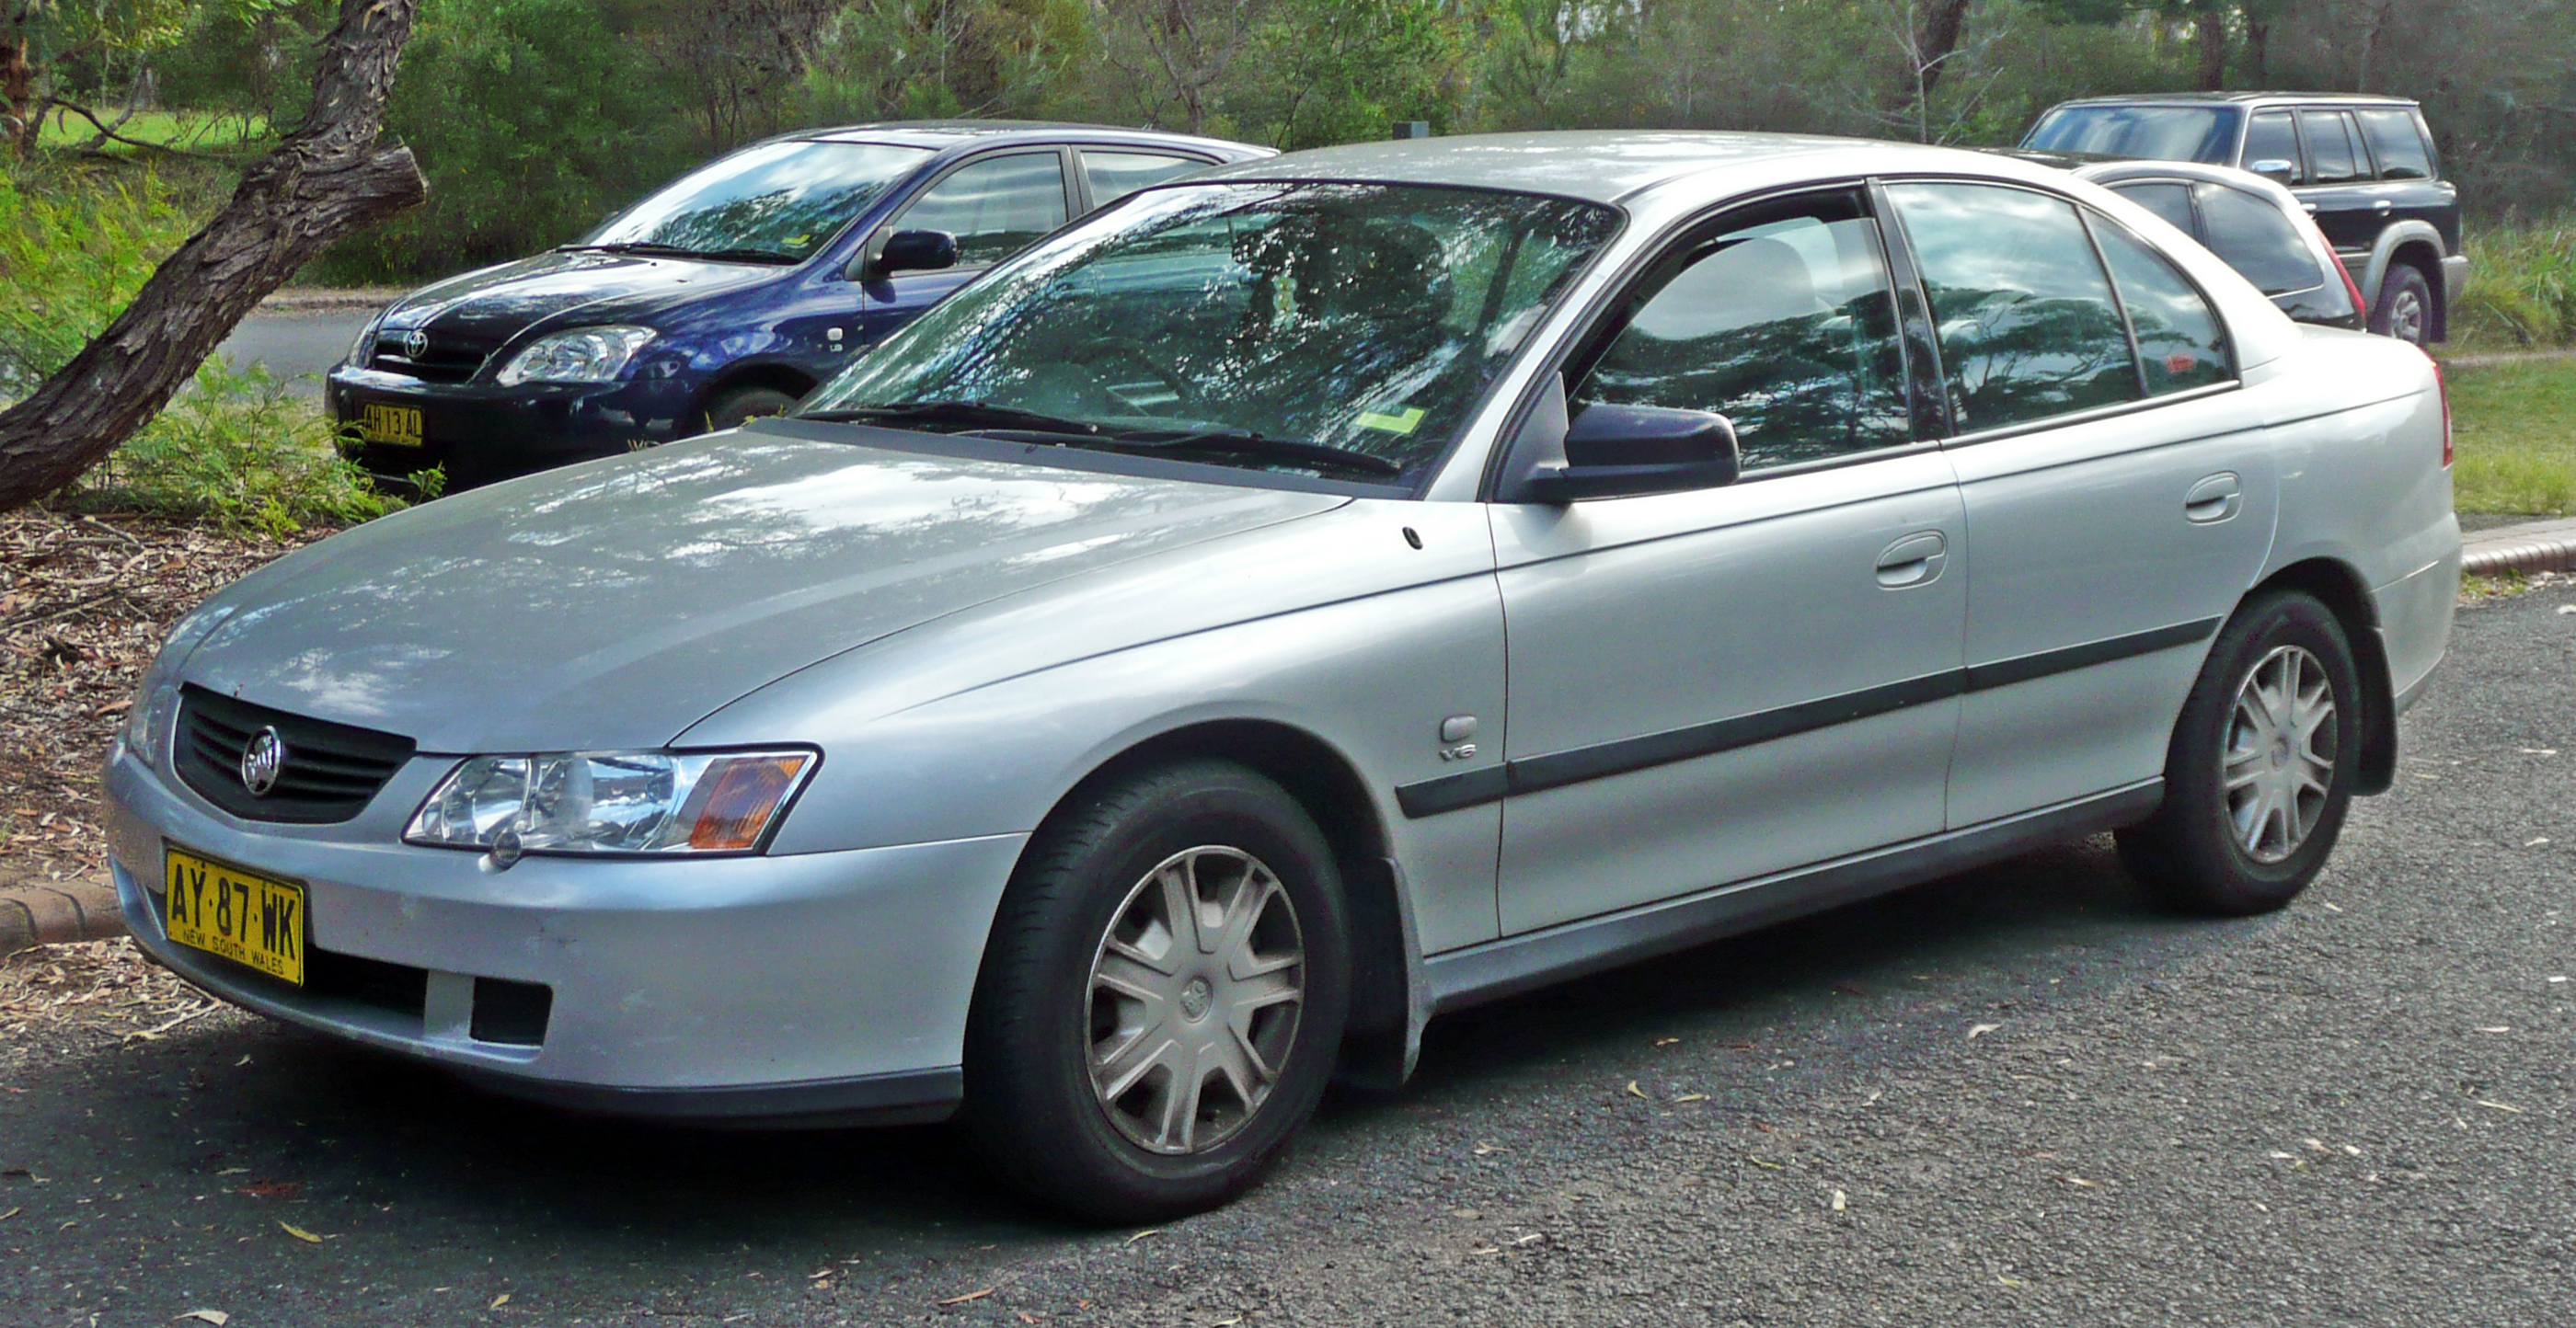 2003 holden vy commodore executive images hd cars wallpaper 2003 holden vy commodore executive choice image hd cars wallpaper 2003 holden vy commodore executive gallery vanachro Gallery